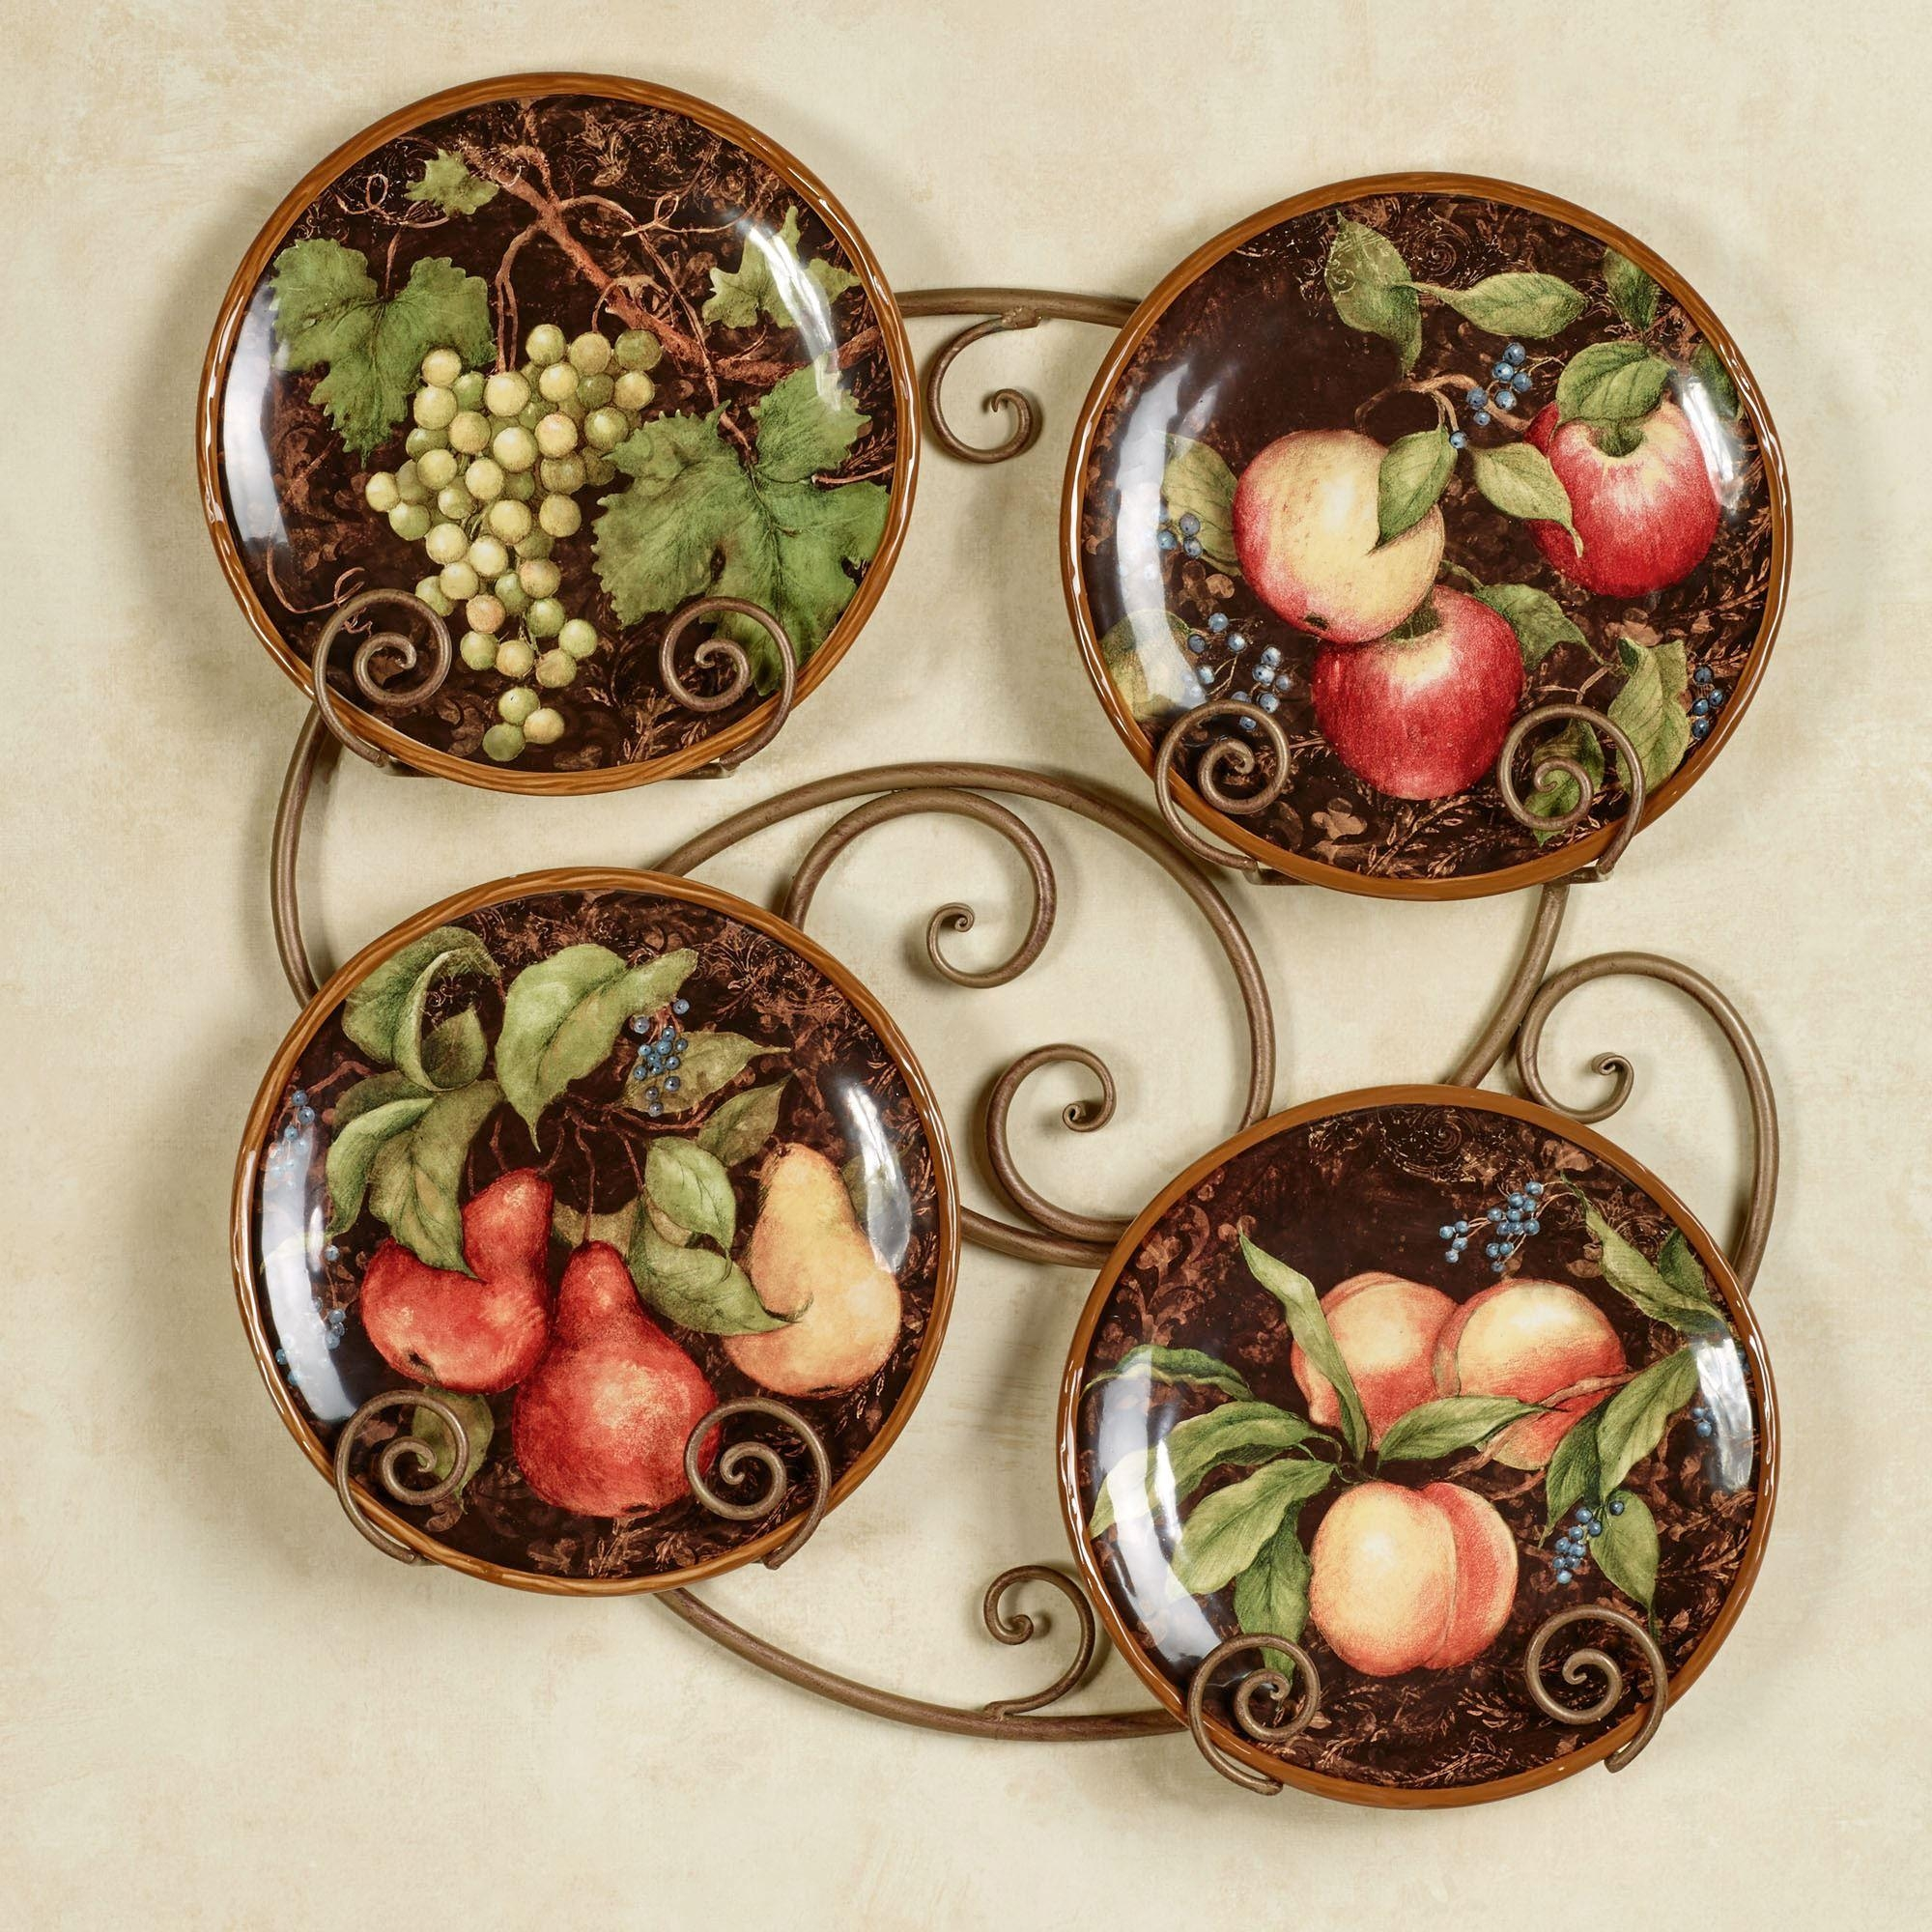 Tuscan And Italian Home Decor | Touch Of Class With Regard To Tuscan Wall Art Decor (Image 10 of 20)